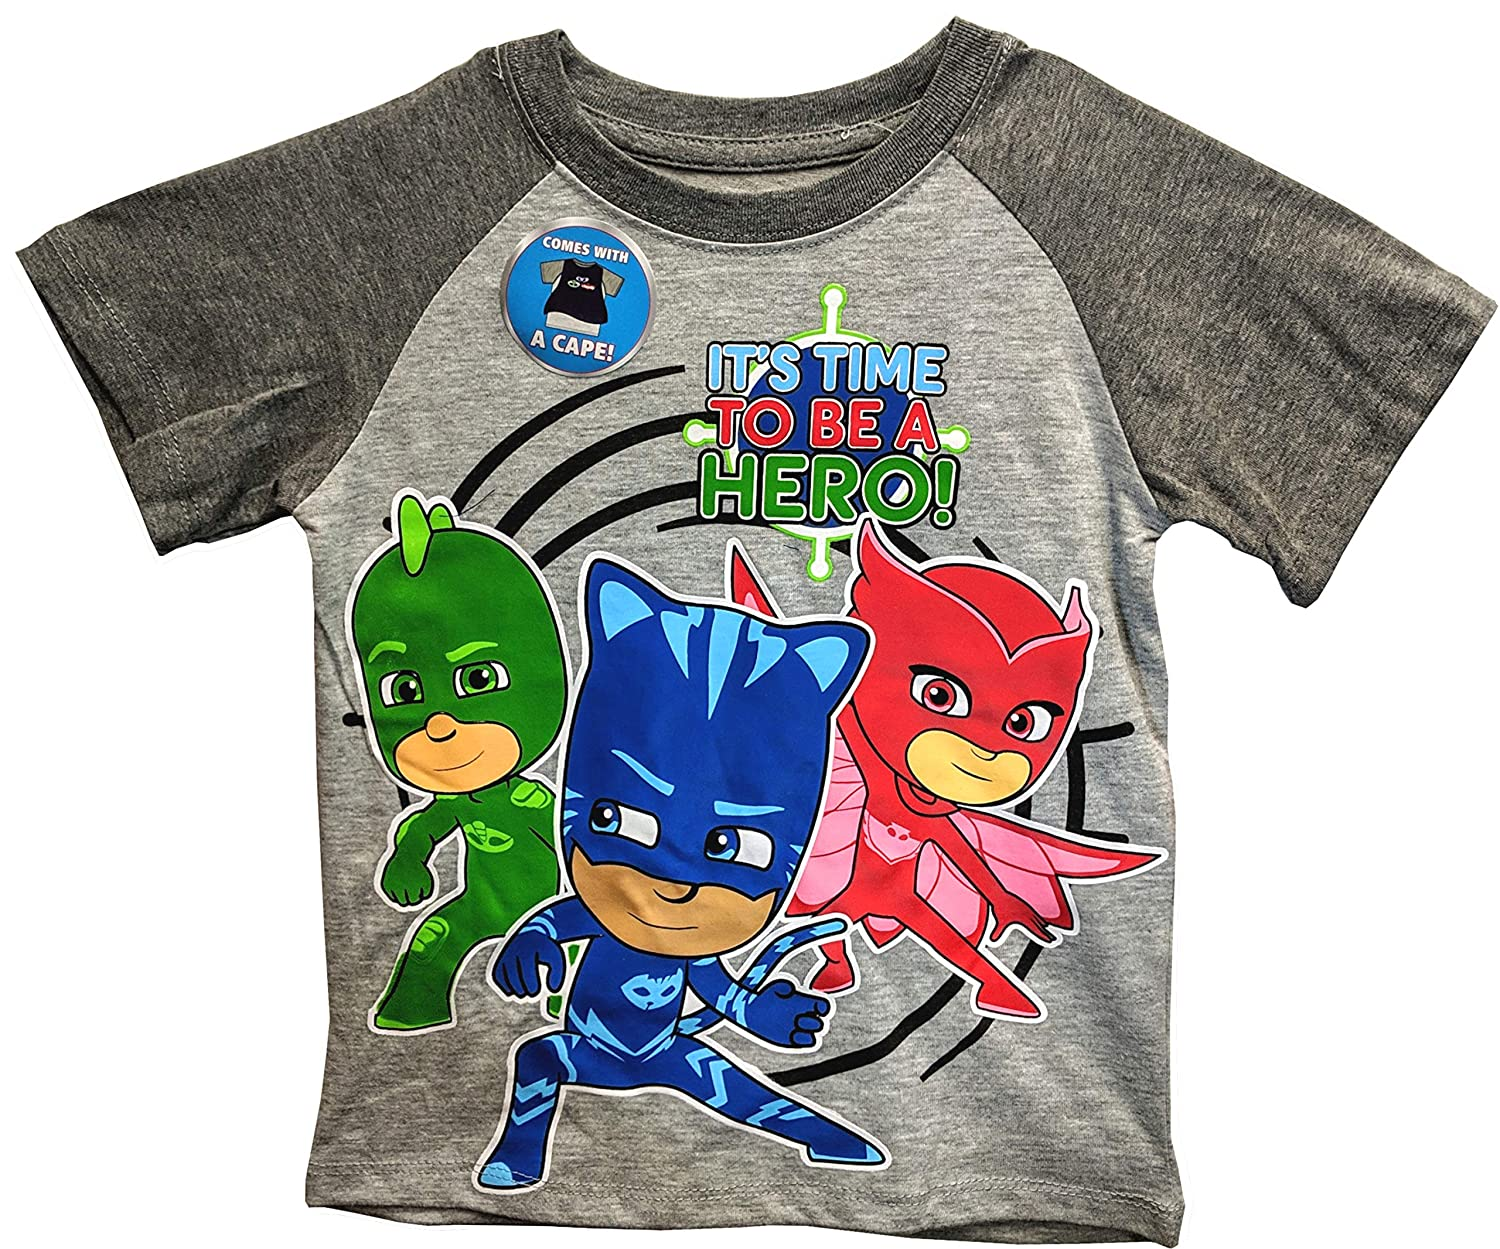 aa20fd50 Amazon.com: PJ Masks Toddler Shirt with a Cape for Boys: Clothing